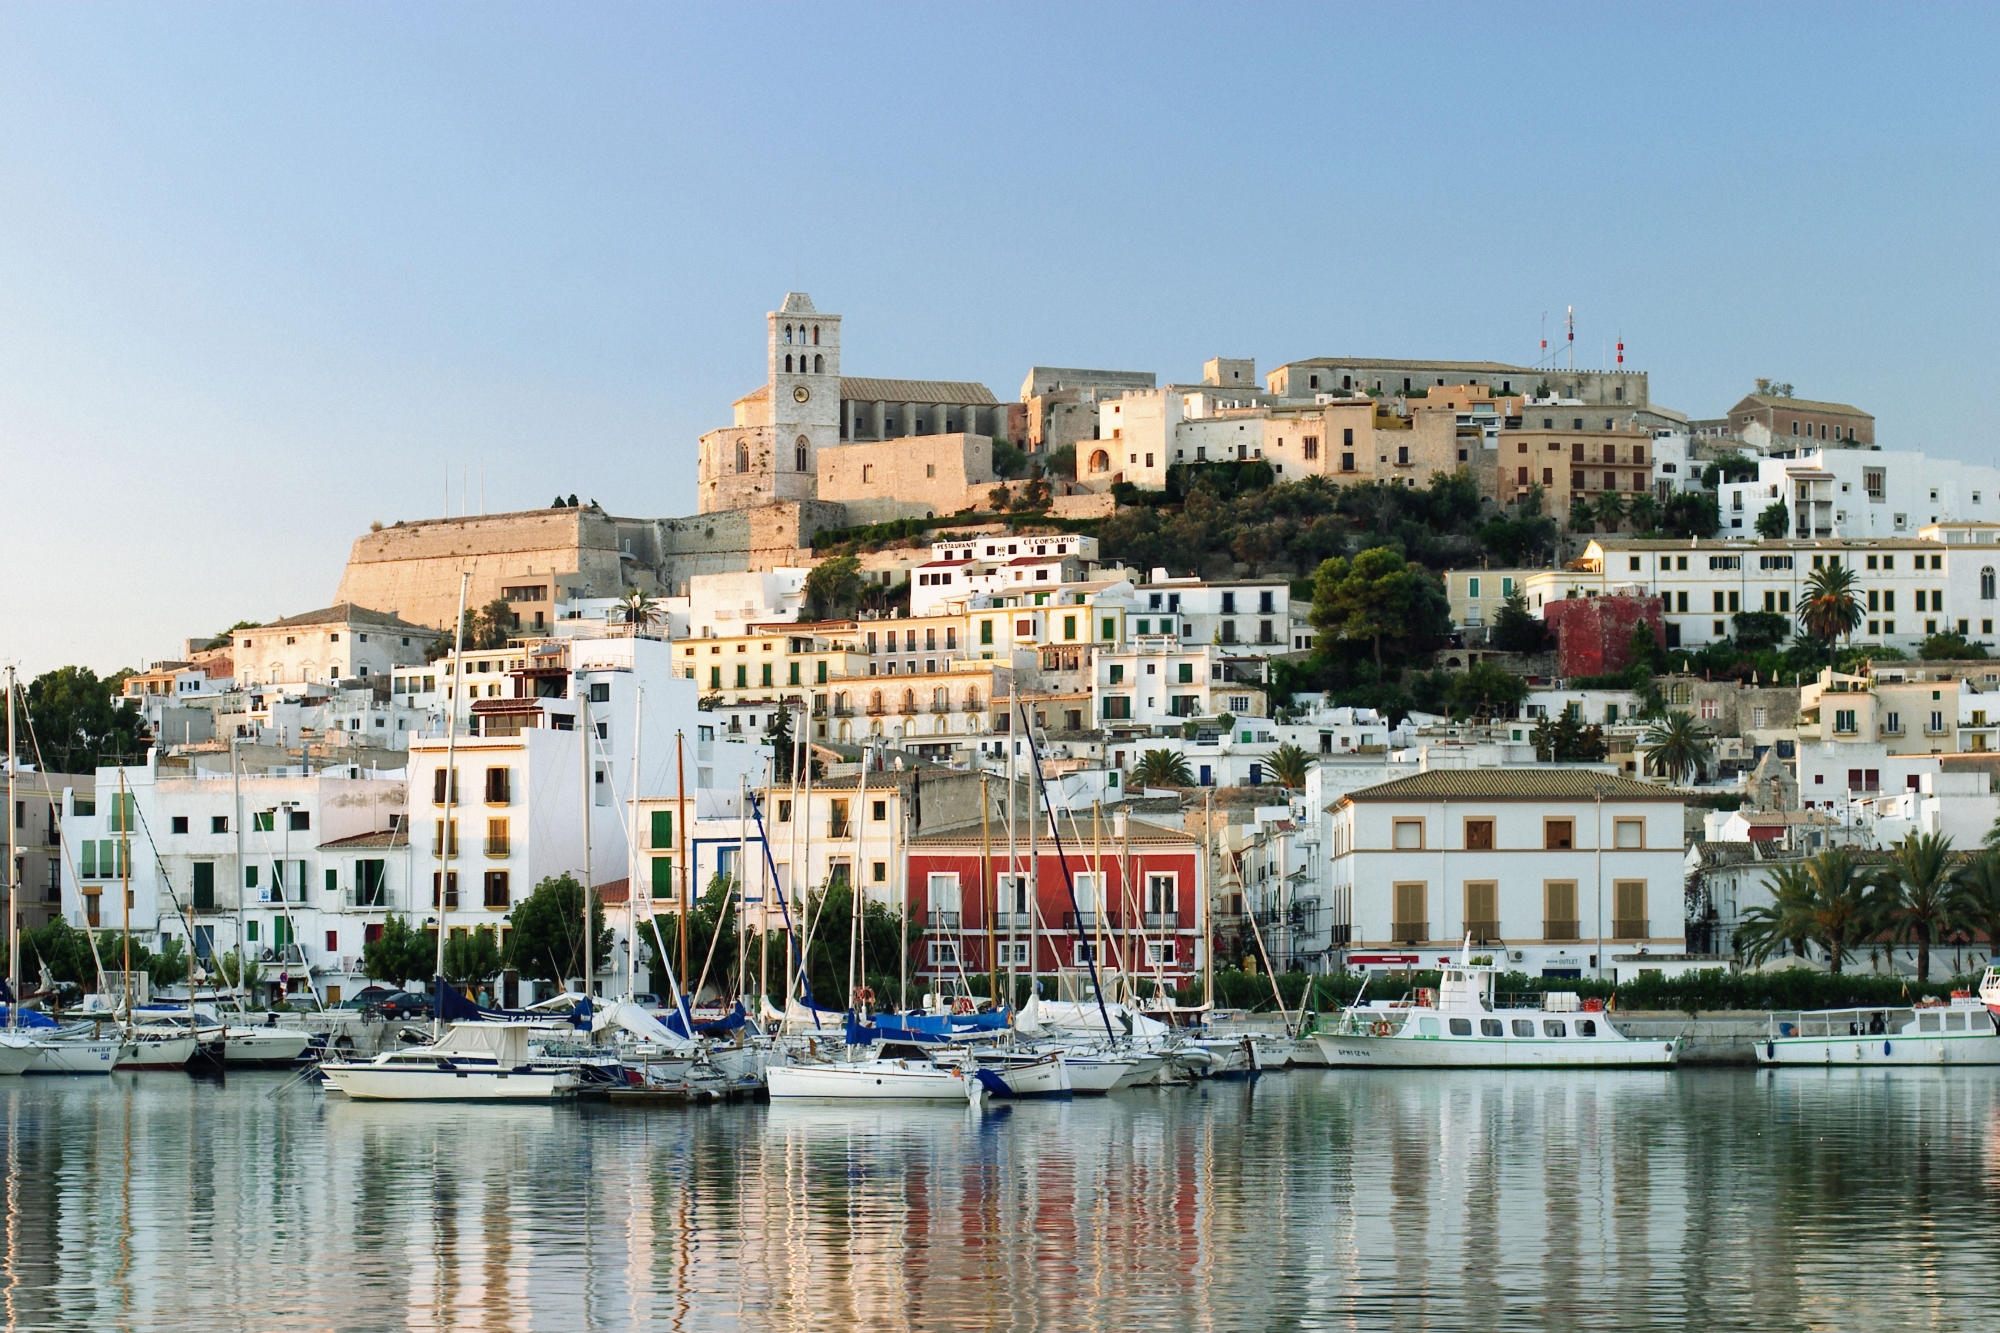 ibiza spain Discover avis car rental options in ibiza island, spain, locationswith avis rent a car select from a range of car options and local specials.